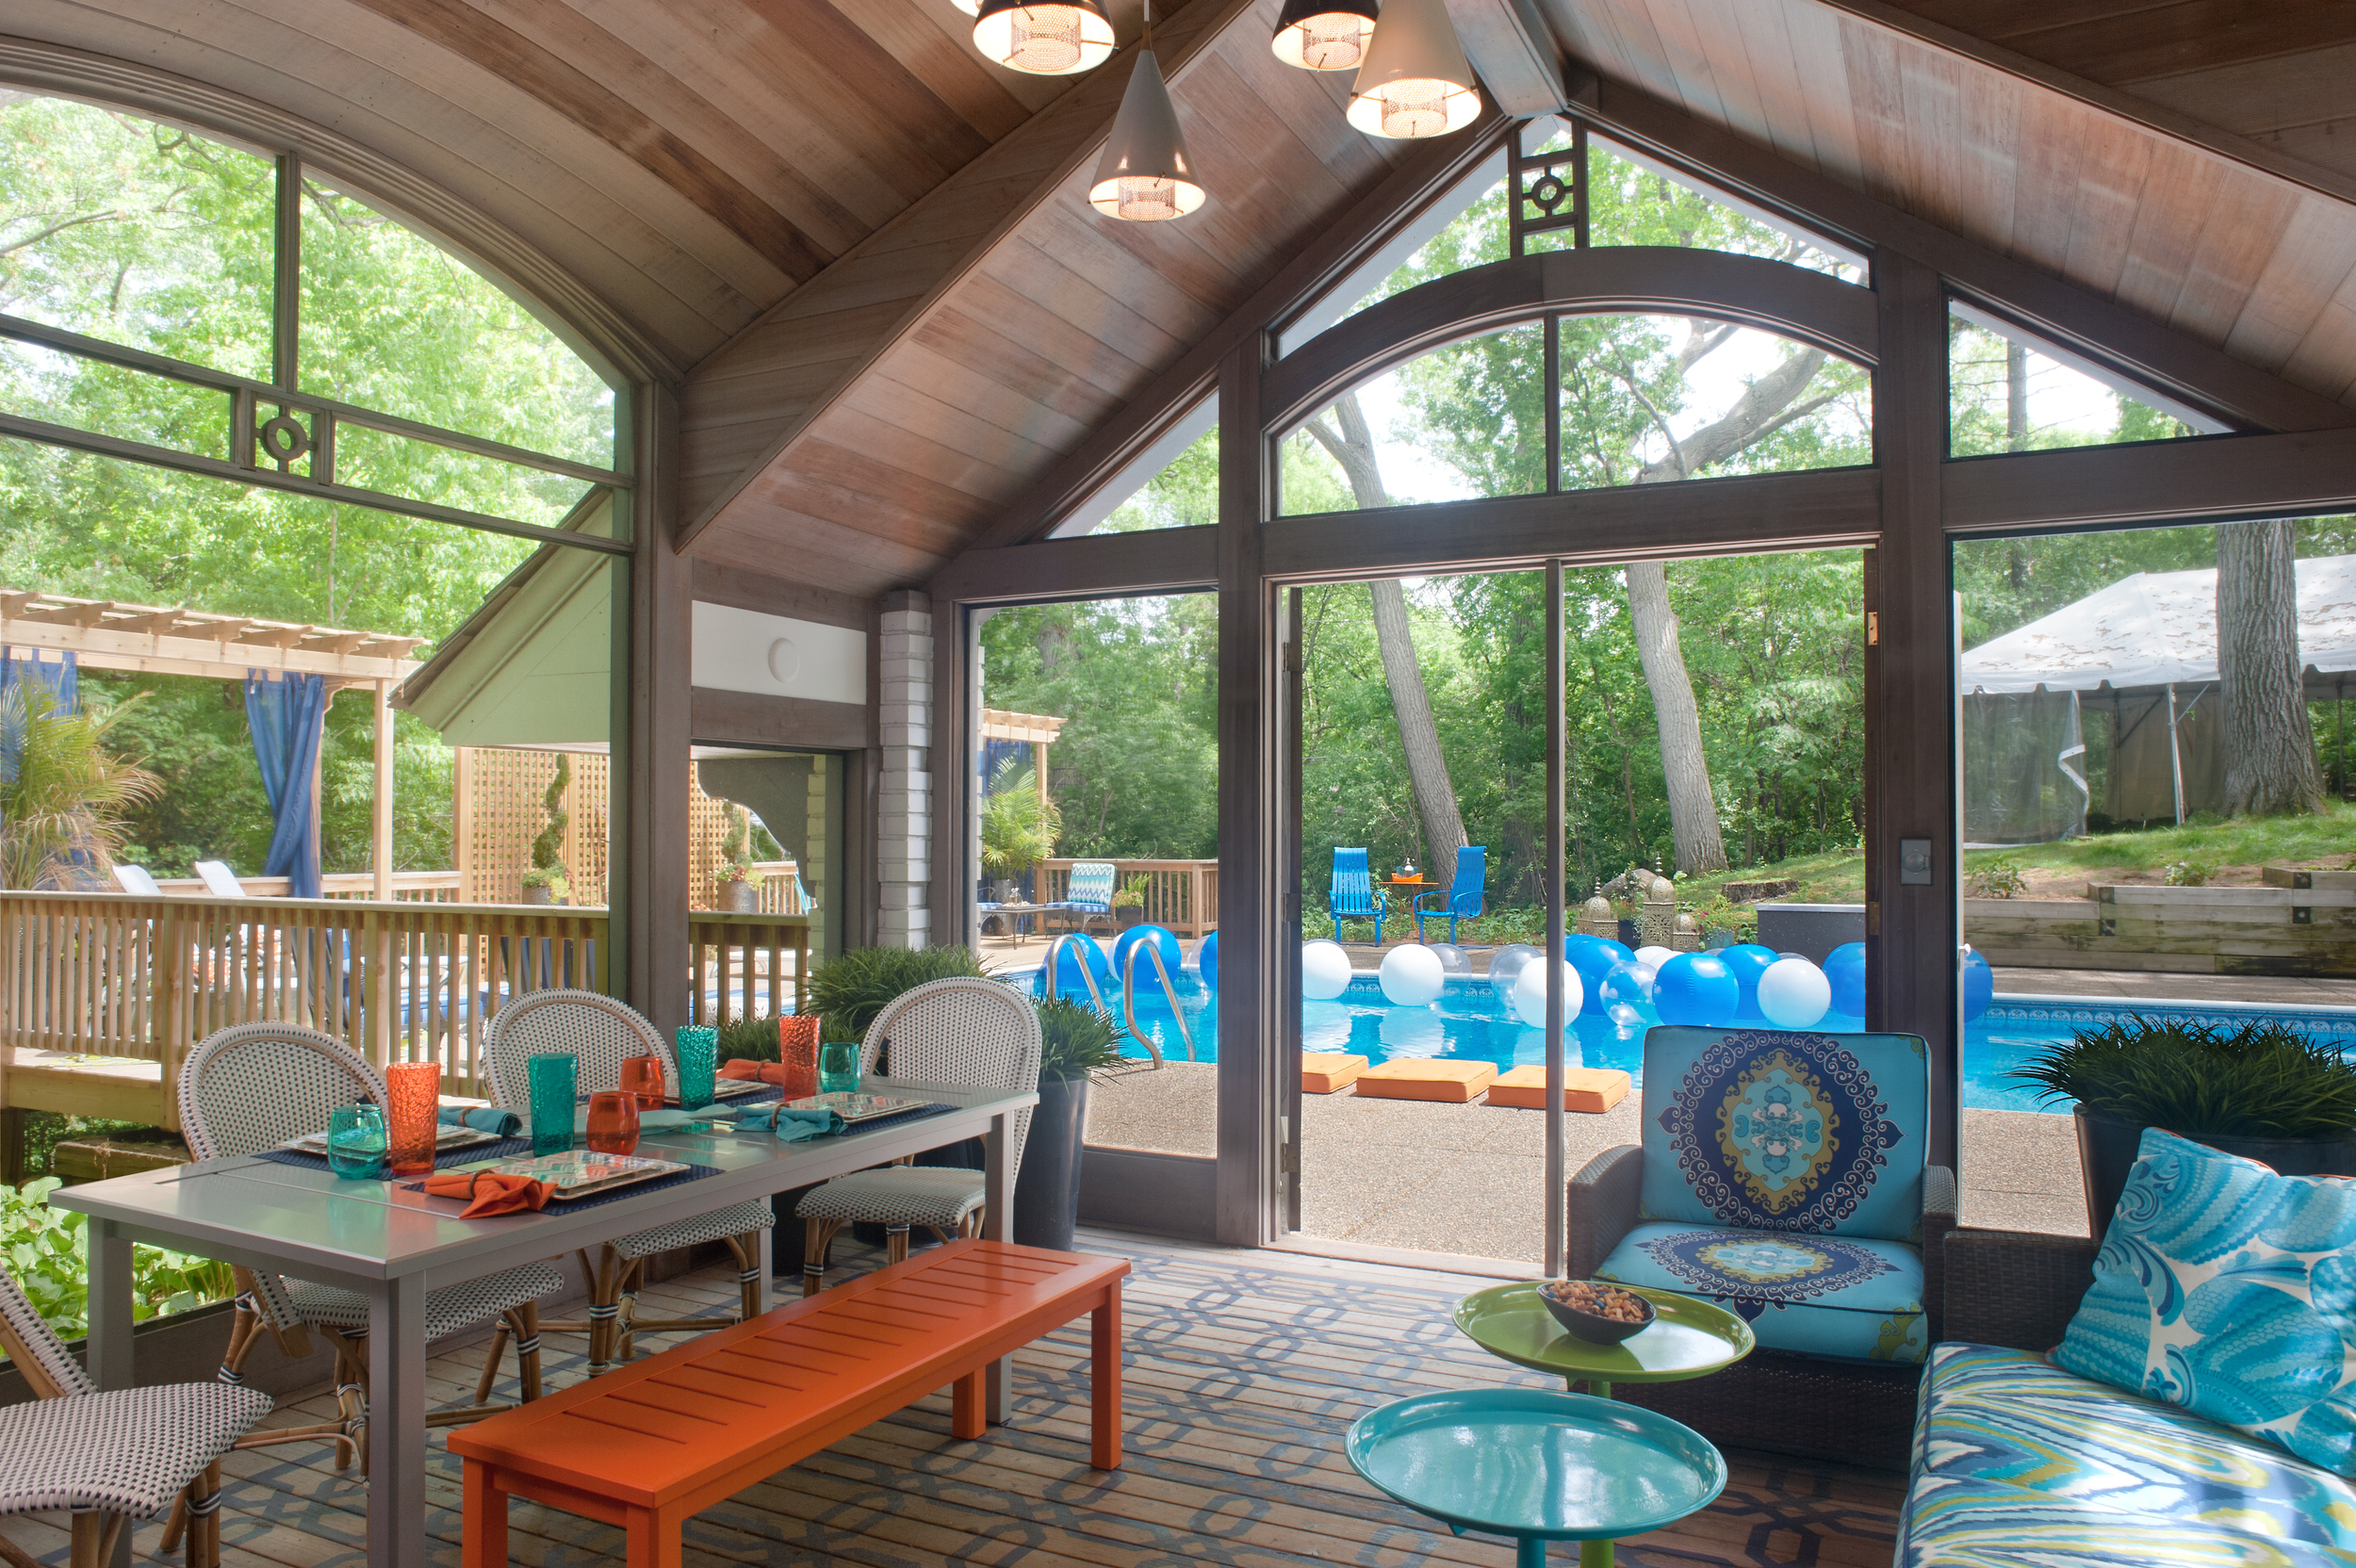 Pool_House_ASID_Home-1.jpg